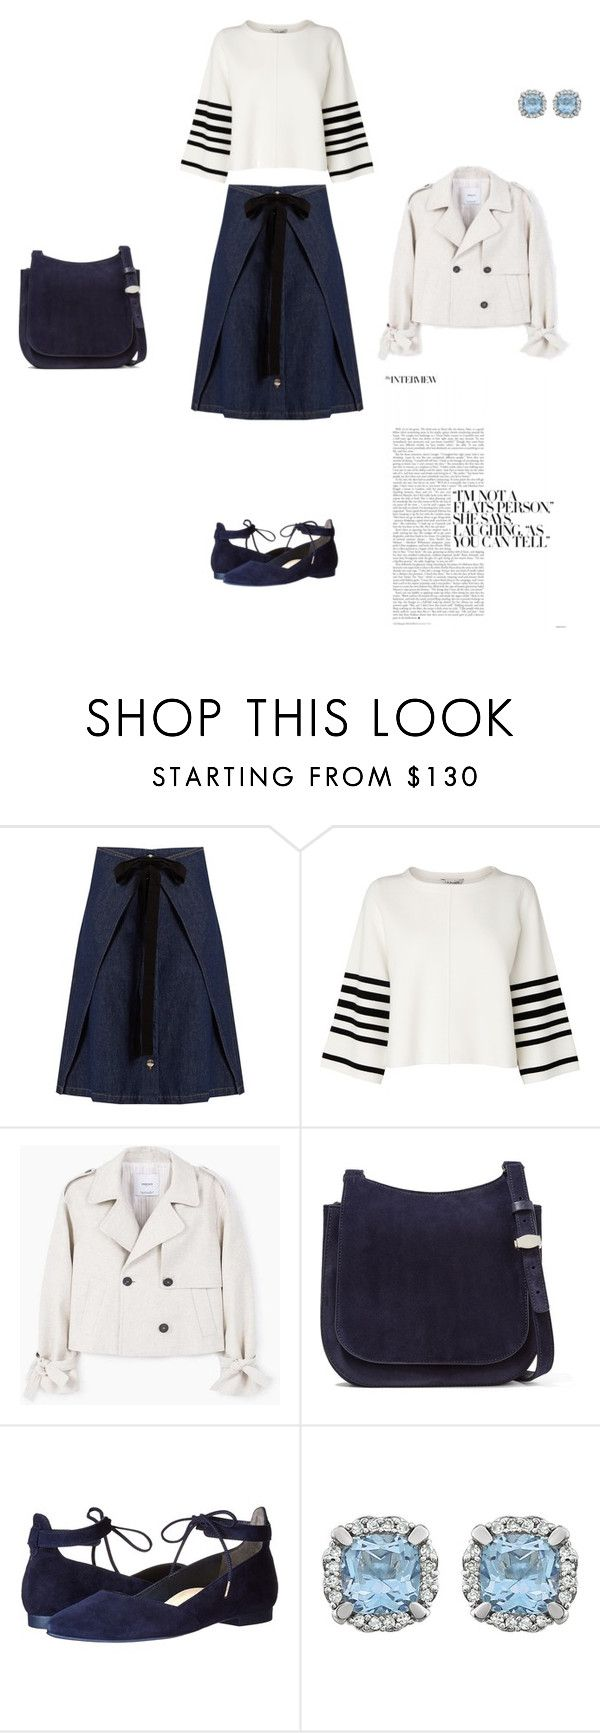 """""""Untitled #10257"""" by explorer-14576312872 ❤ liked on Polyvore featuring MM6 Maison Margiela, L.K.Bennett, MANGO, The Row and Paul Green"""